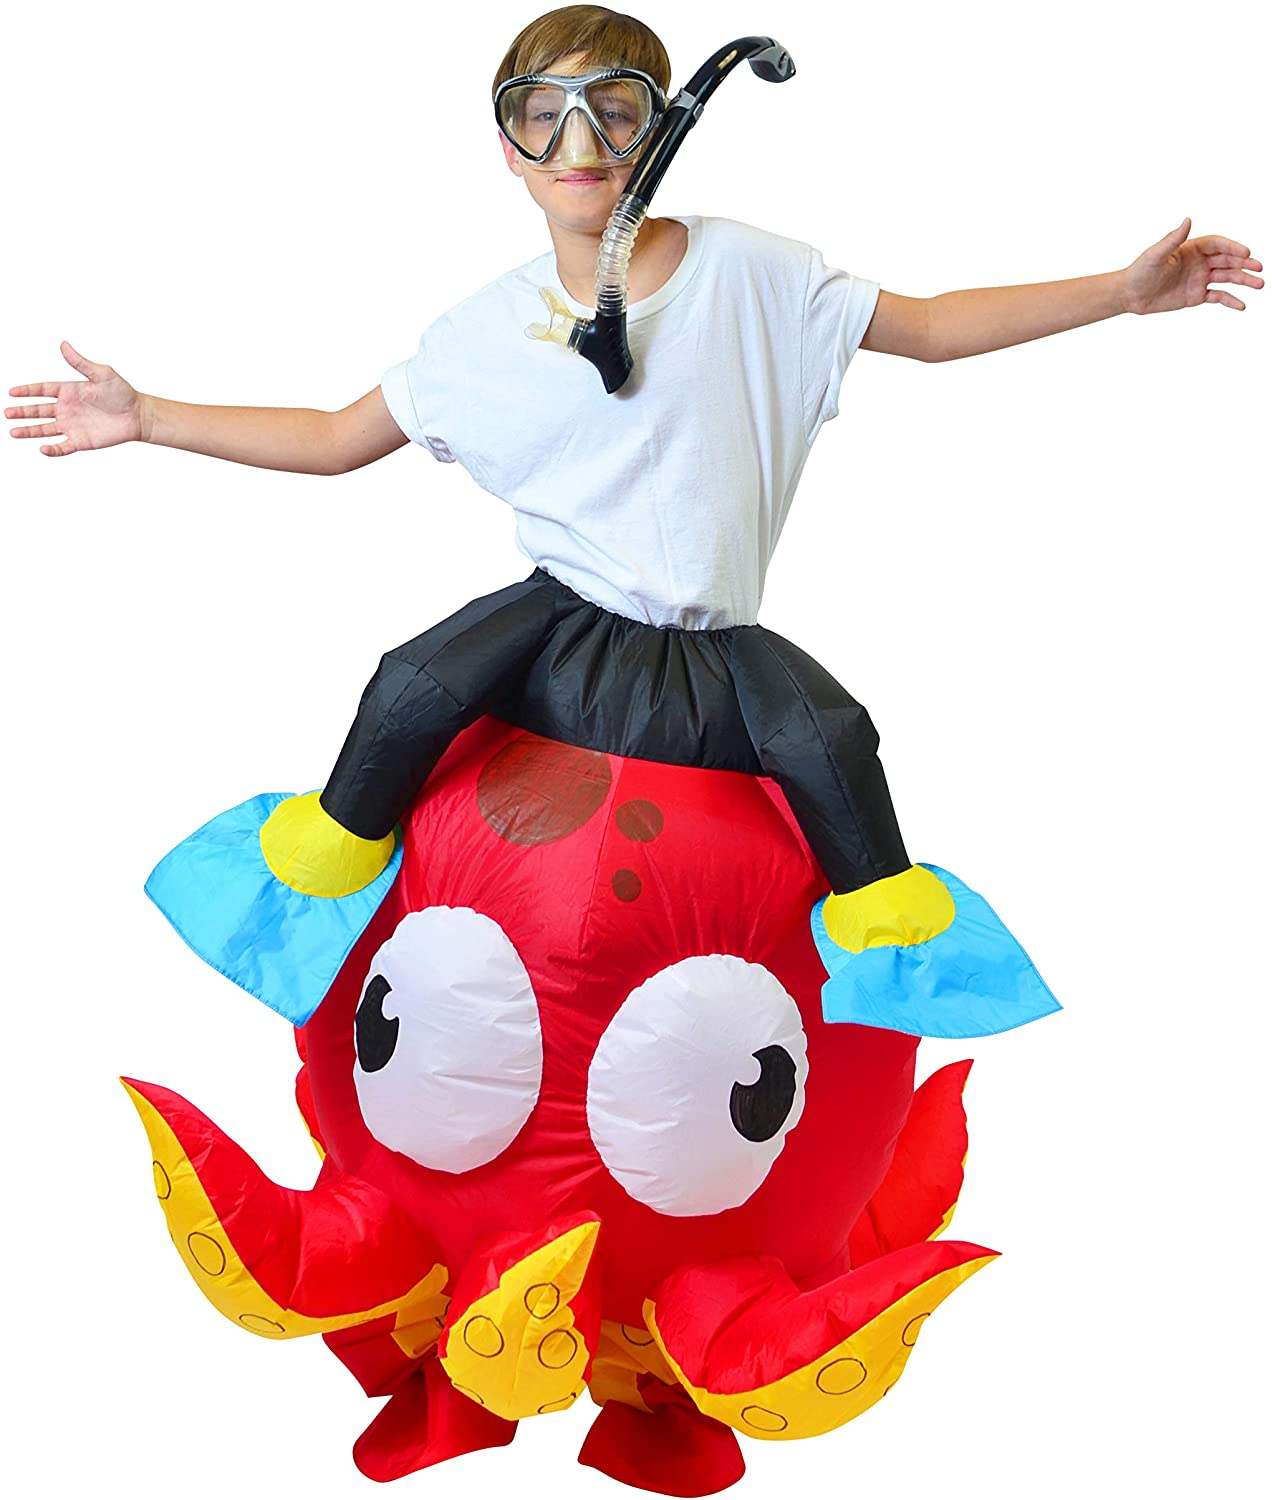 Spooktacular Creations Inflatable Costume Riding an Octopus Air Blow-up Deluxe Costume - Child Size Fits 5-12yr (45